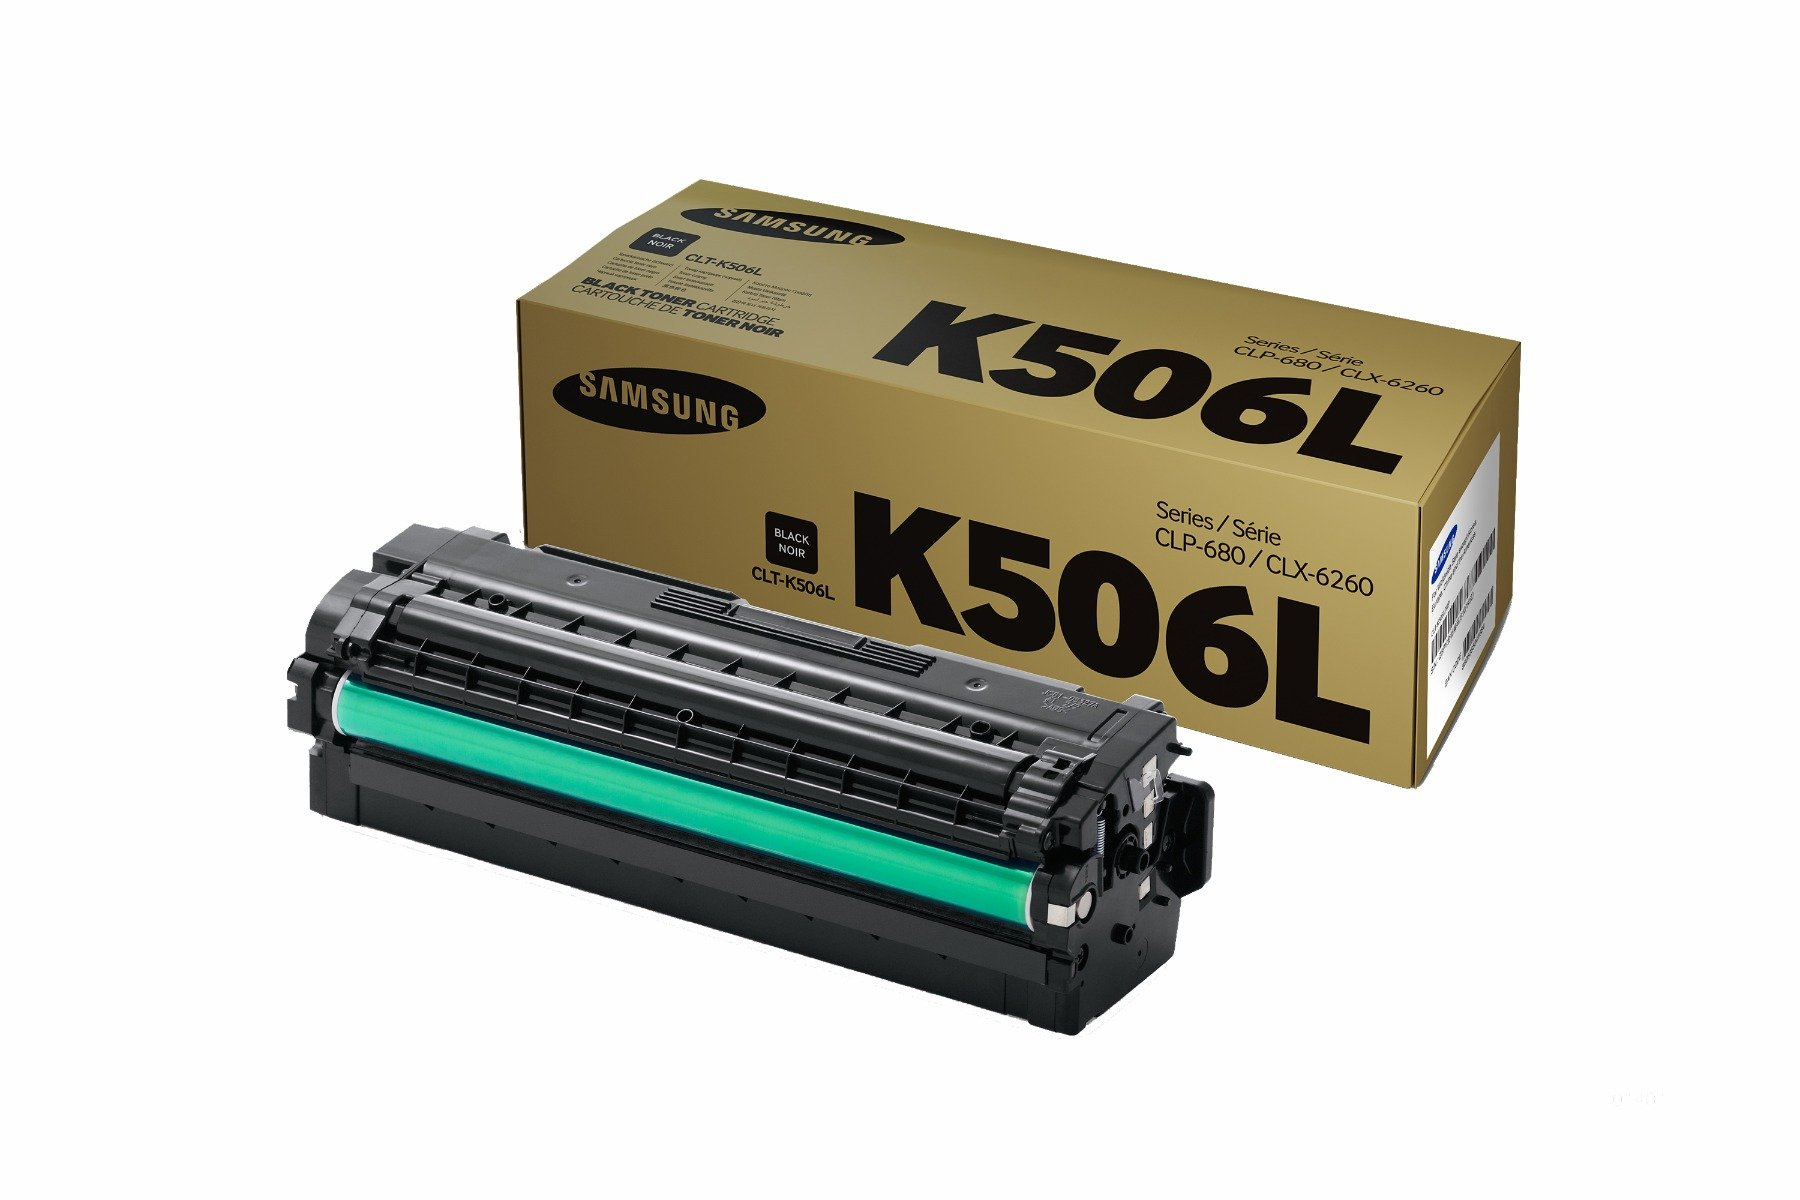 Genuine High Capacity Black Samsung K506 Toner Cartridge (CLT-K506L/ELS)